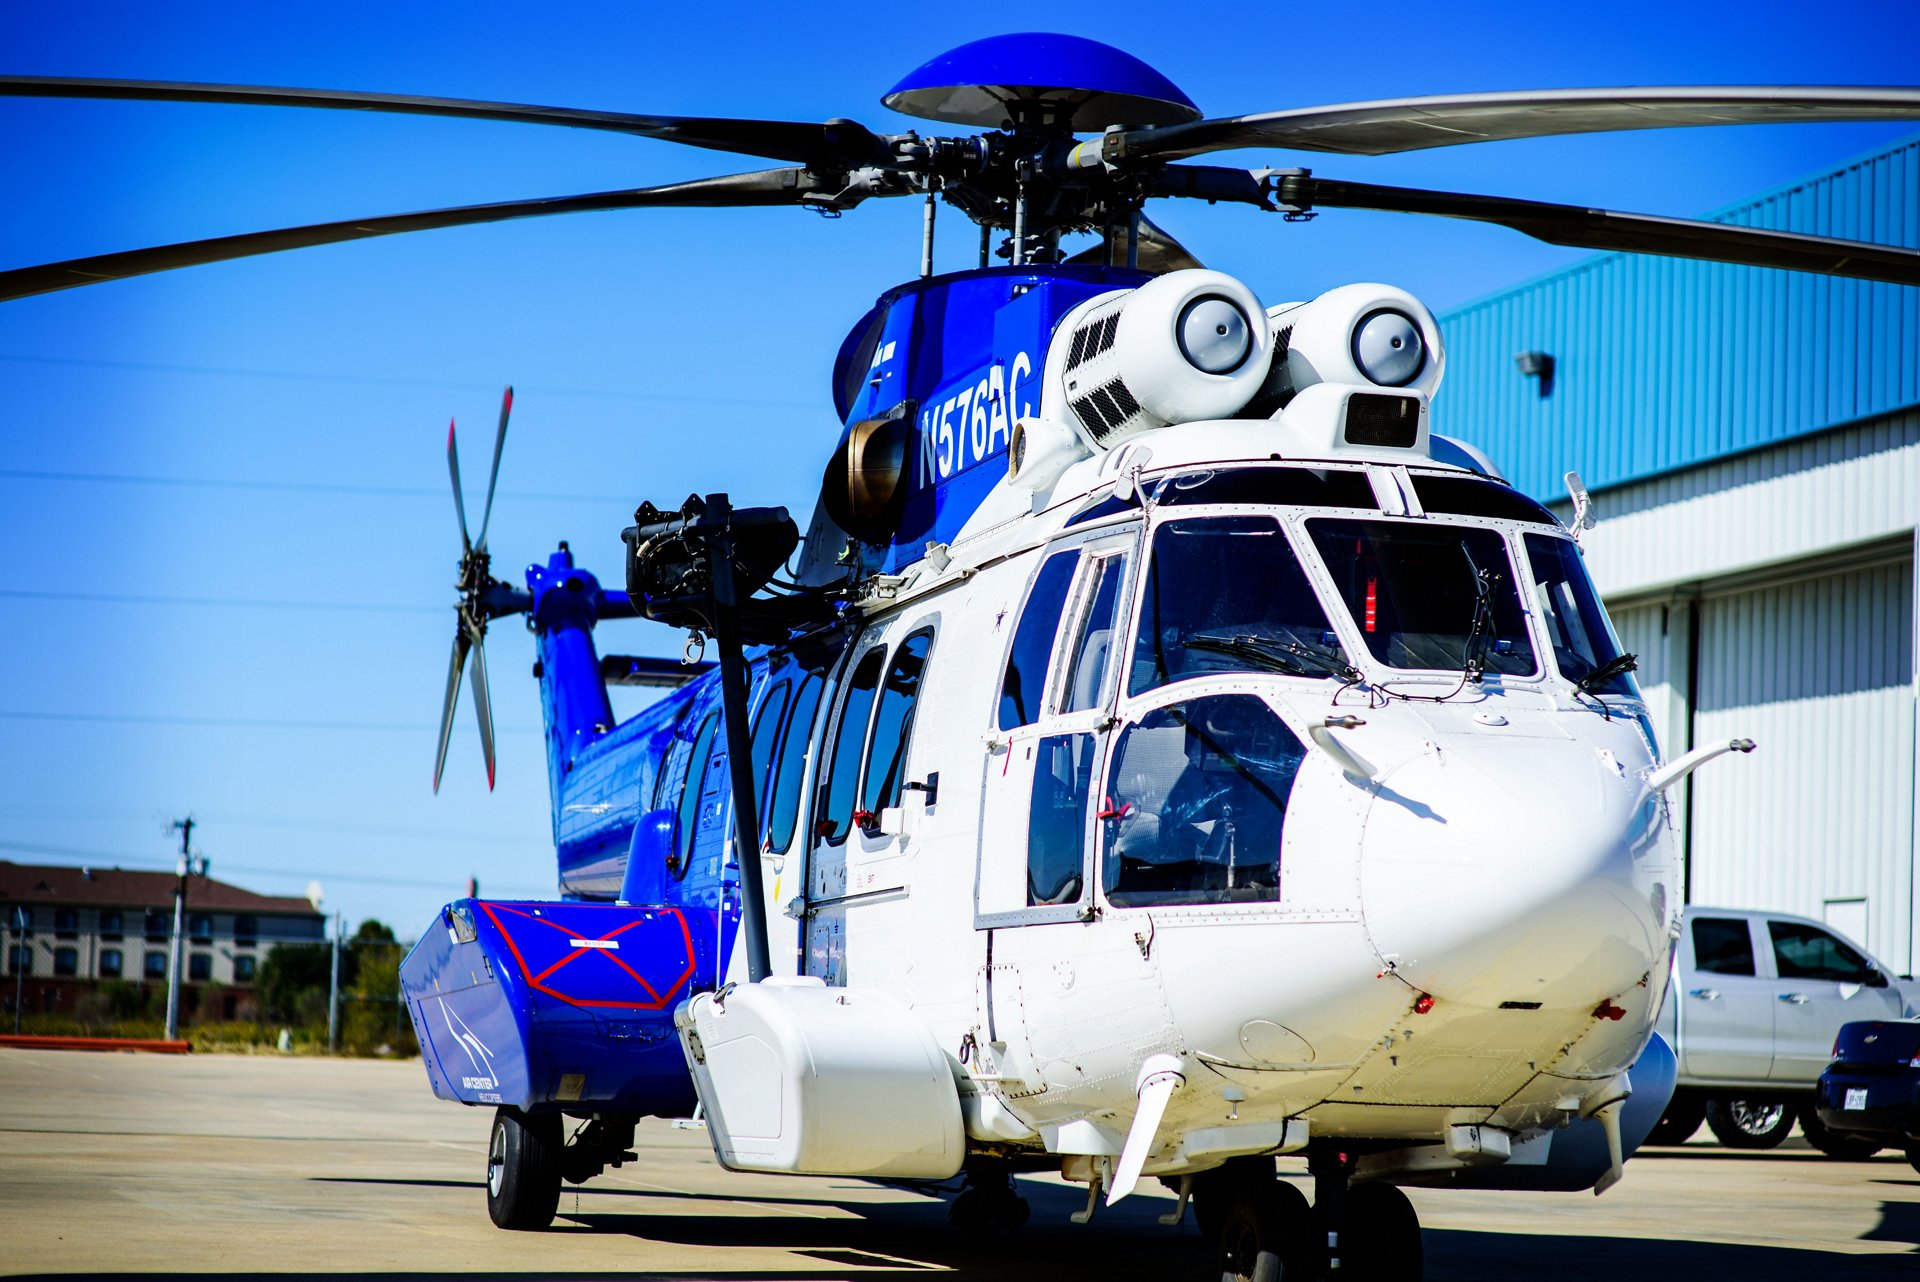 Air Center Helicopters Inc (ACHI) purchased 17 H225 helicopters previously devoted to the oil & gas market. Following the necessary retrofit work, these helicopters are now performing transport and utility missions for the U.S. Government, with an HCare Smart contract signed in October 2019 to guarantee their maximum availability.